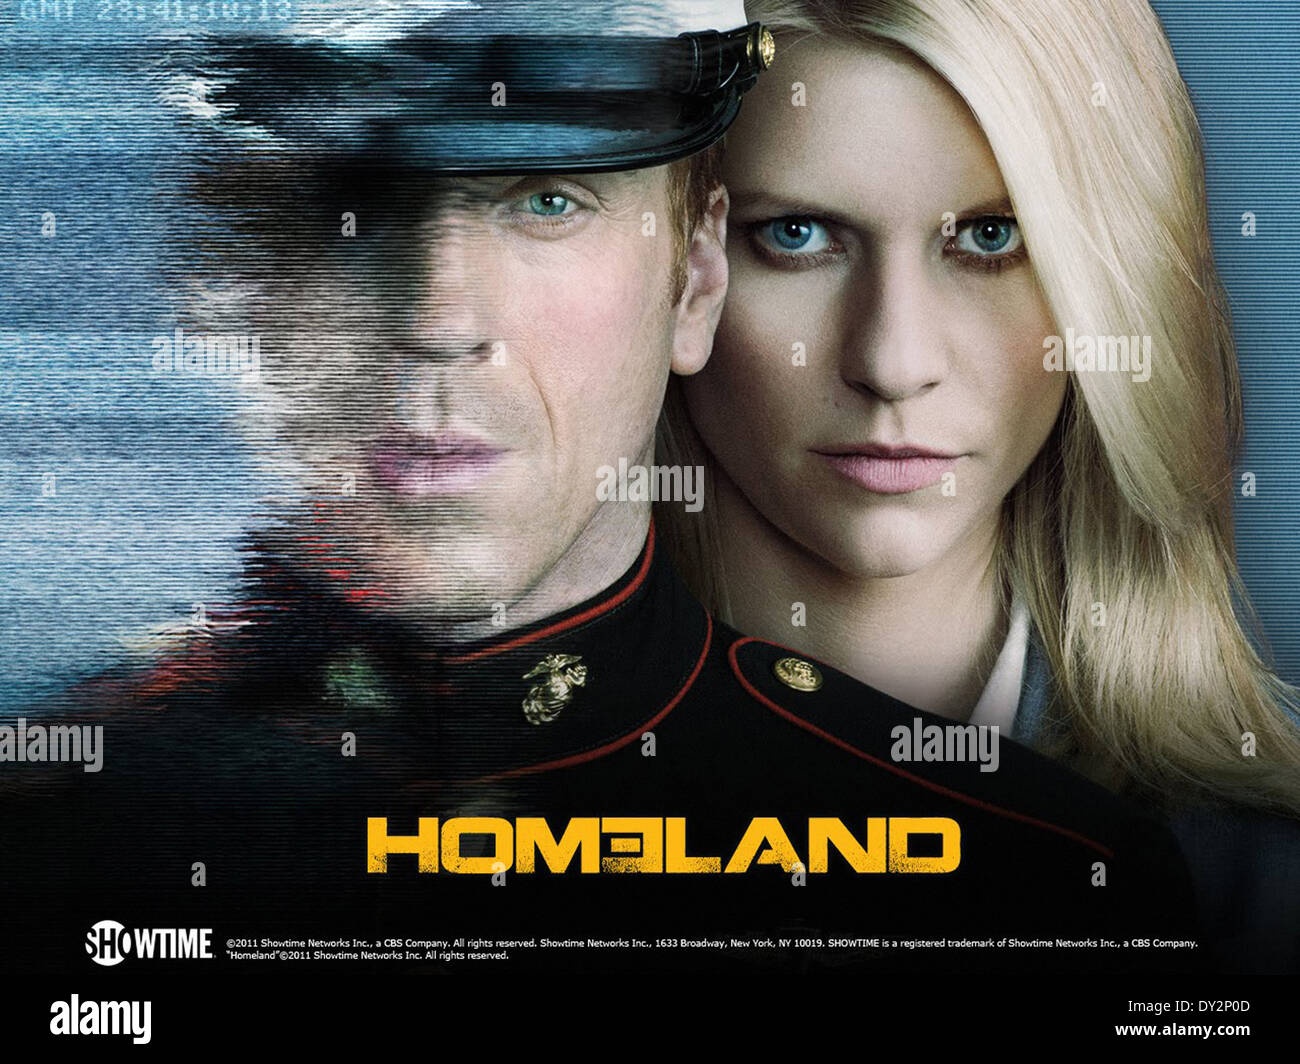 HOMELAND (TV) (2011) DAMIAN LEWIS, CLAIRE DANES MOVIESTORE COLLECTION LTD - Stock Image